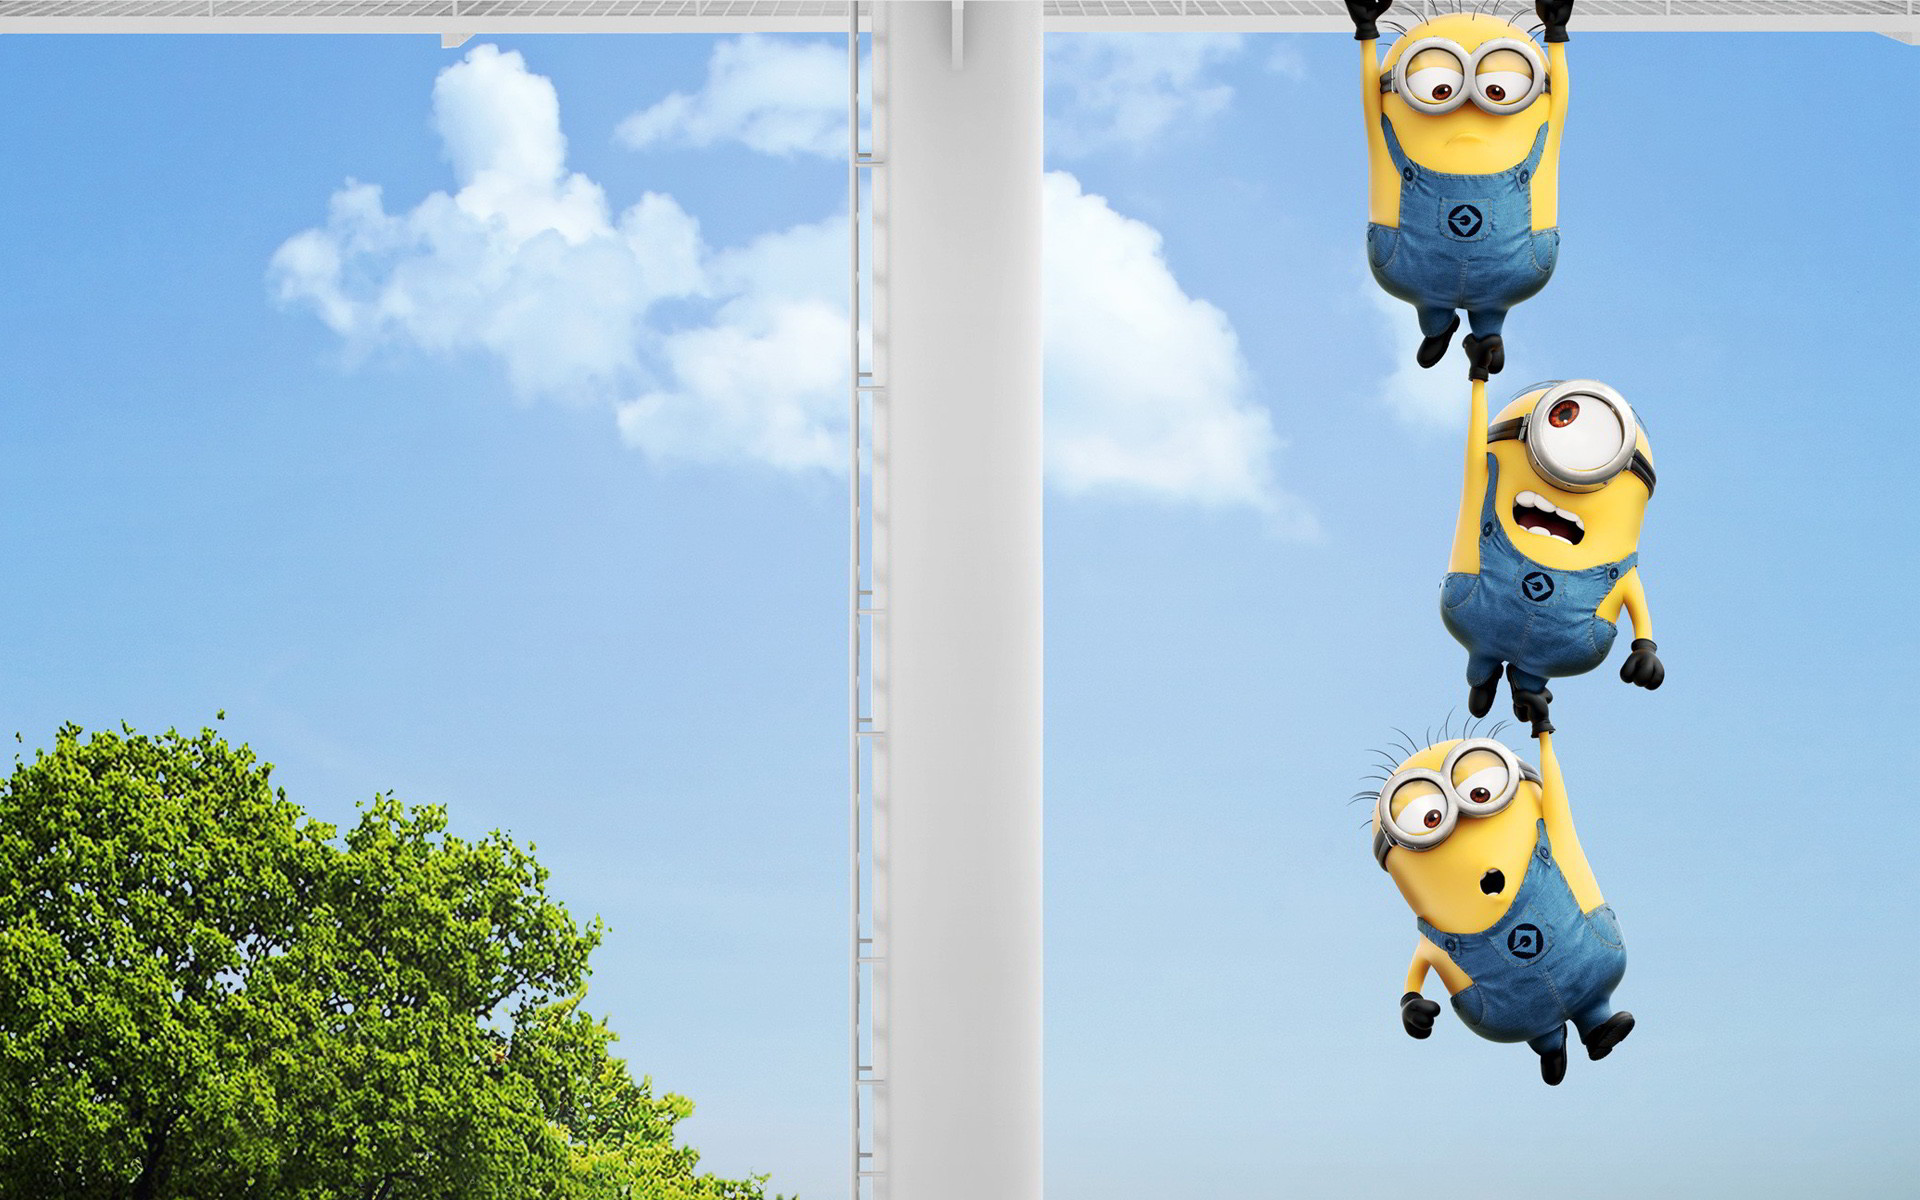 1920x1200 Funny Cute Minions Hd Wallpapers Gifs Desktop For